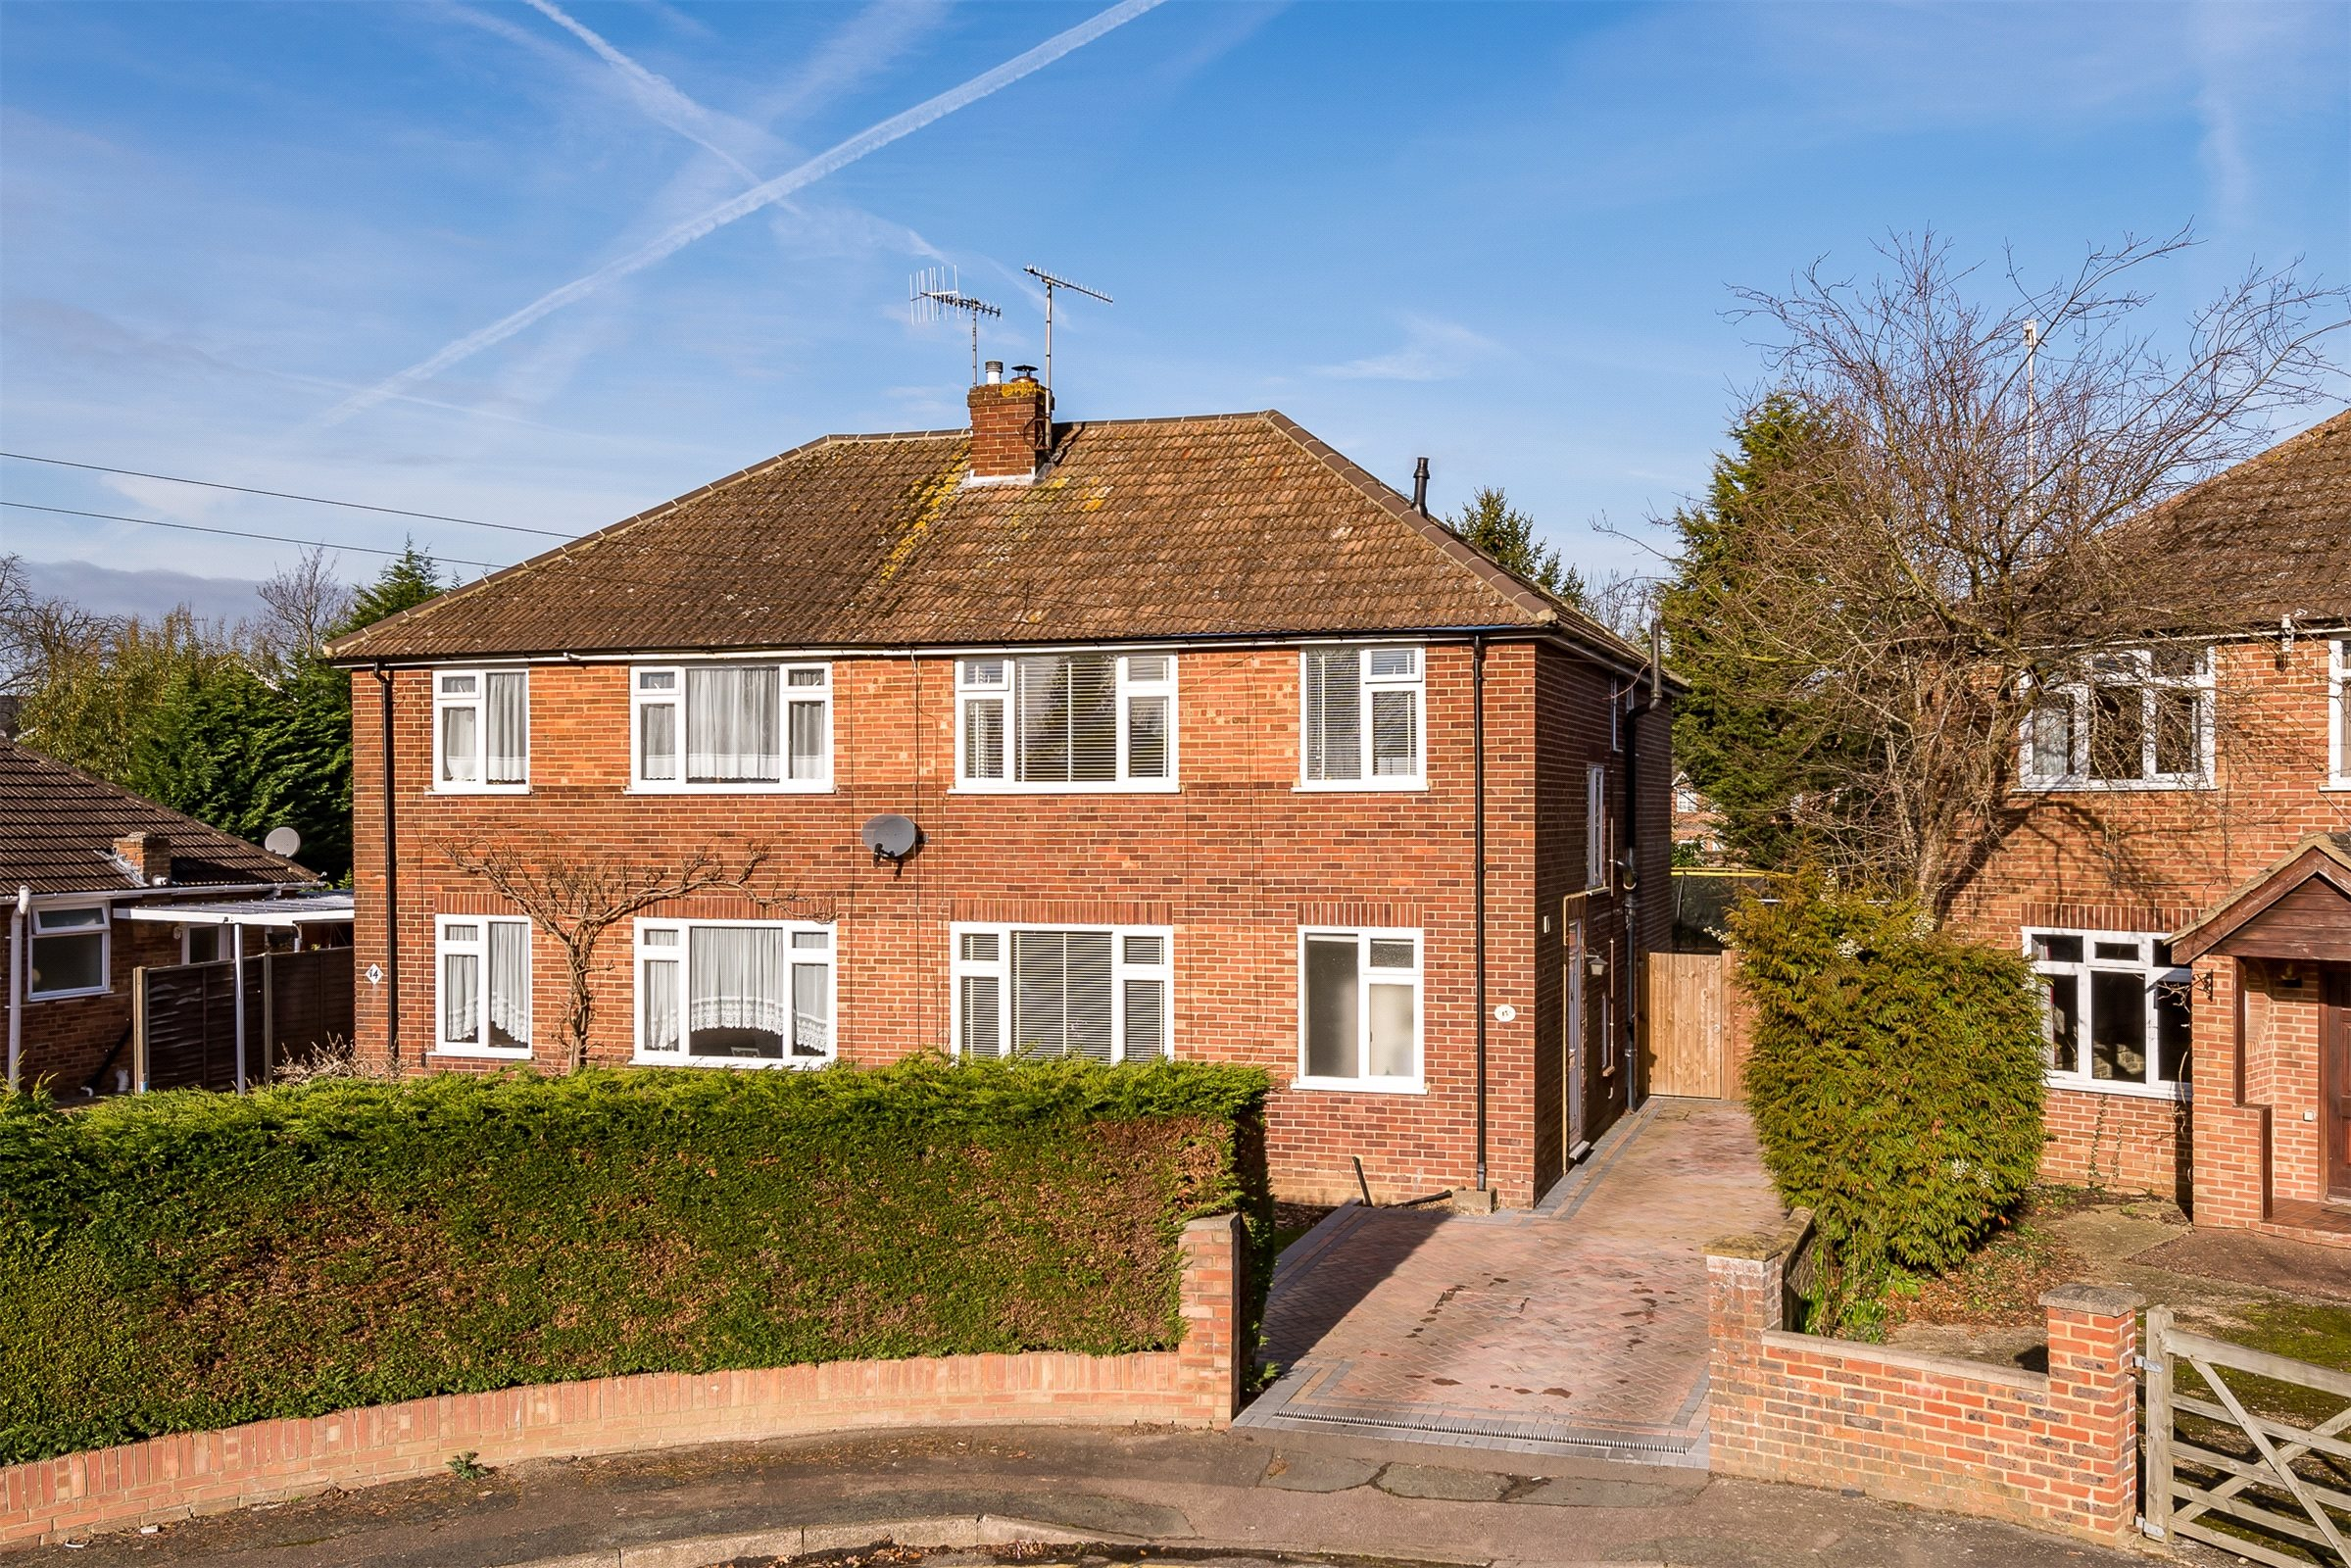 4 Bedrooms Semi Detached House for sale in Lechford Road, Horley, Surrey, RH6